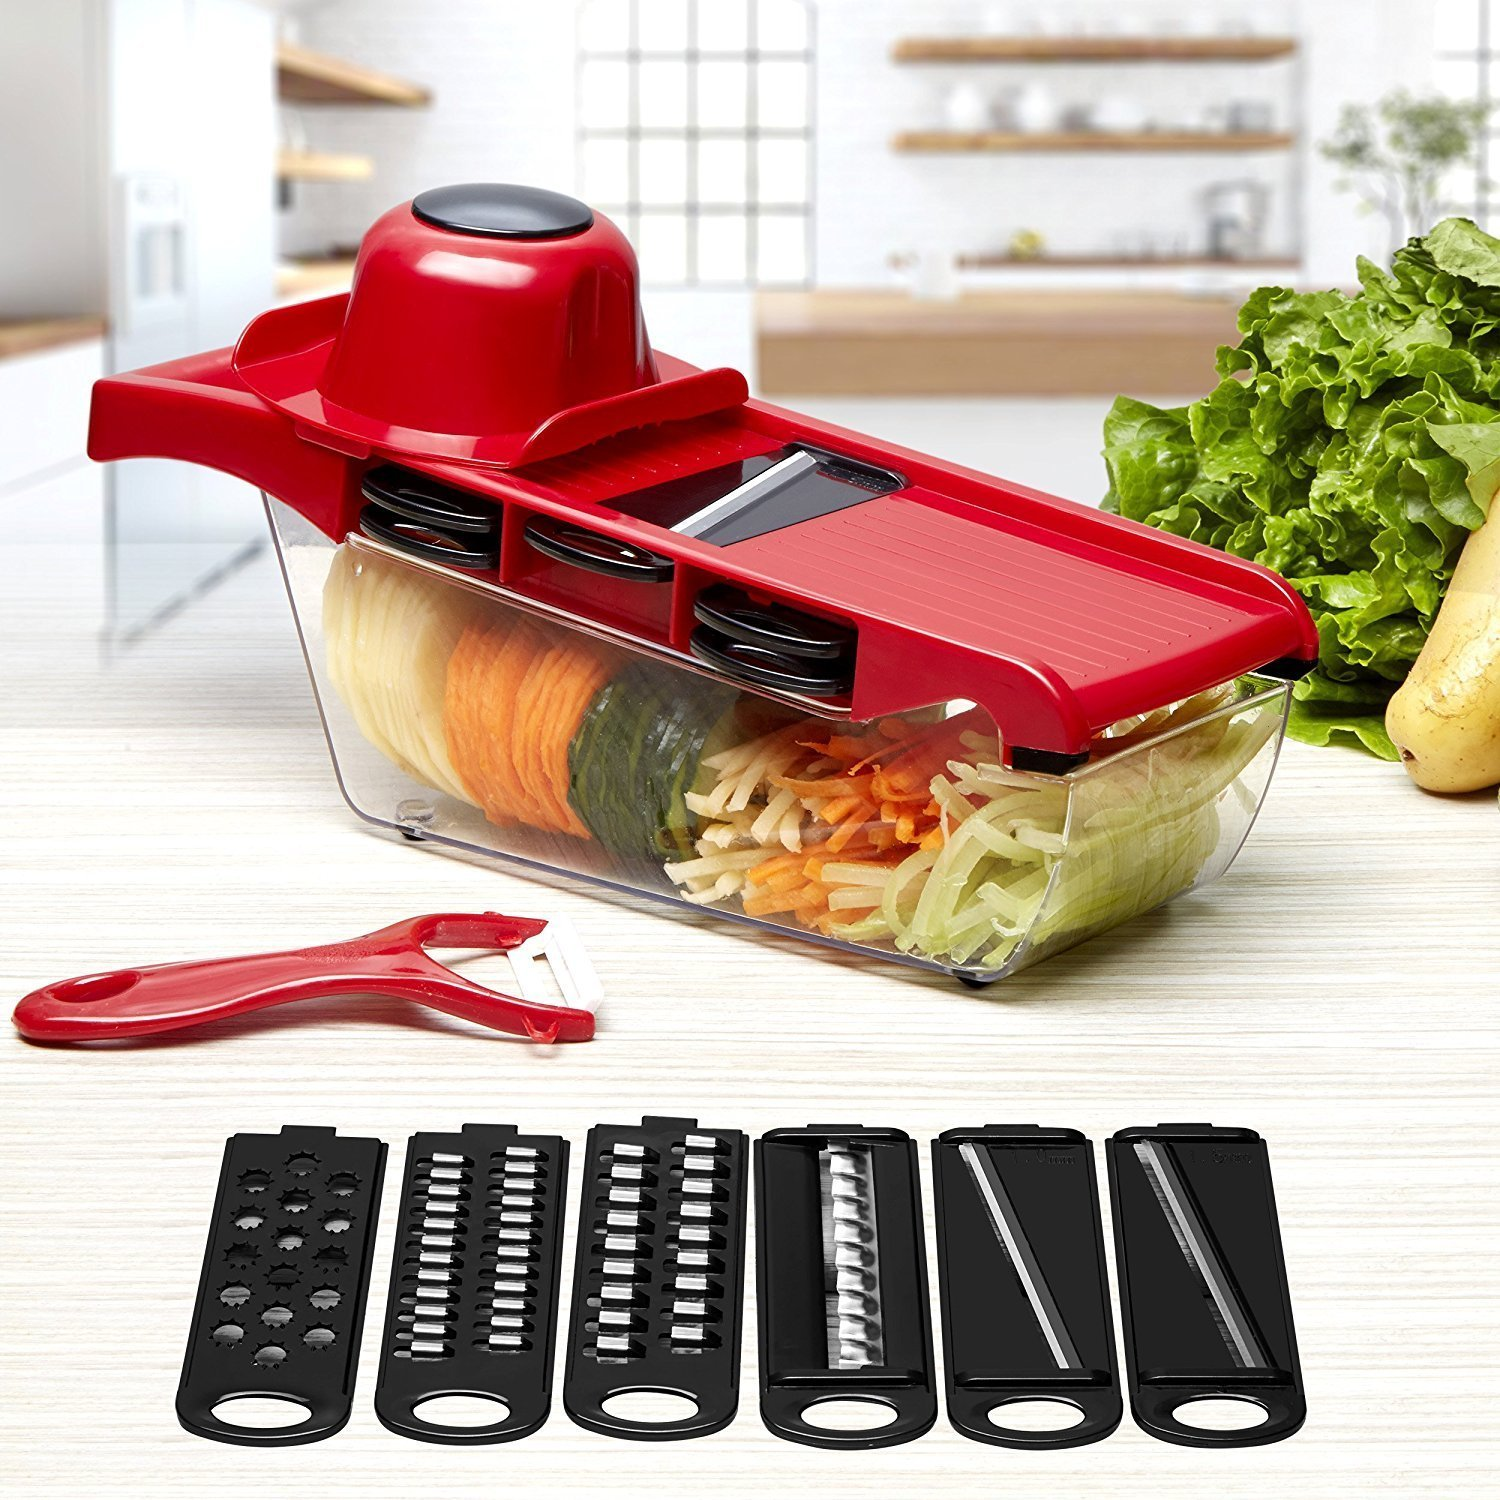 Mandoline Slicer Adjustable Vegetable Fiveaccy Cutter Chopper with 6 Interchangeable Stainless Steel Blades with Ceramic Peeler for Potato, Tomato, Onion, Cucumber, Cheese